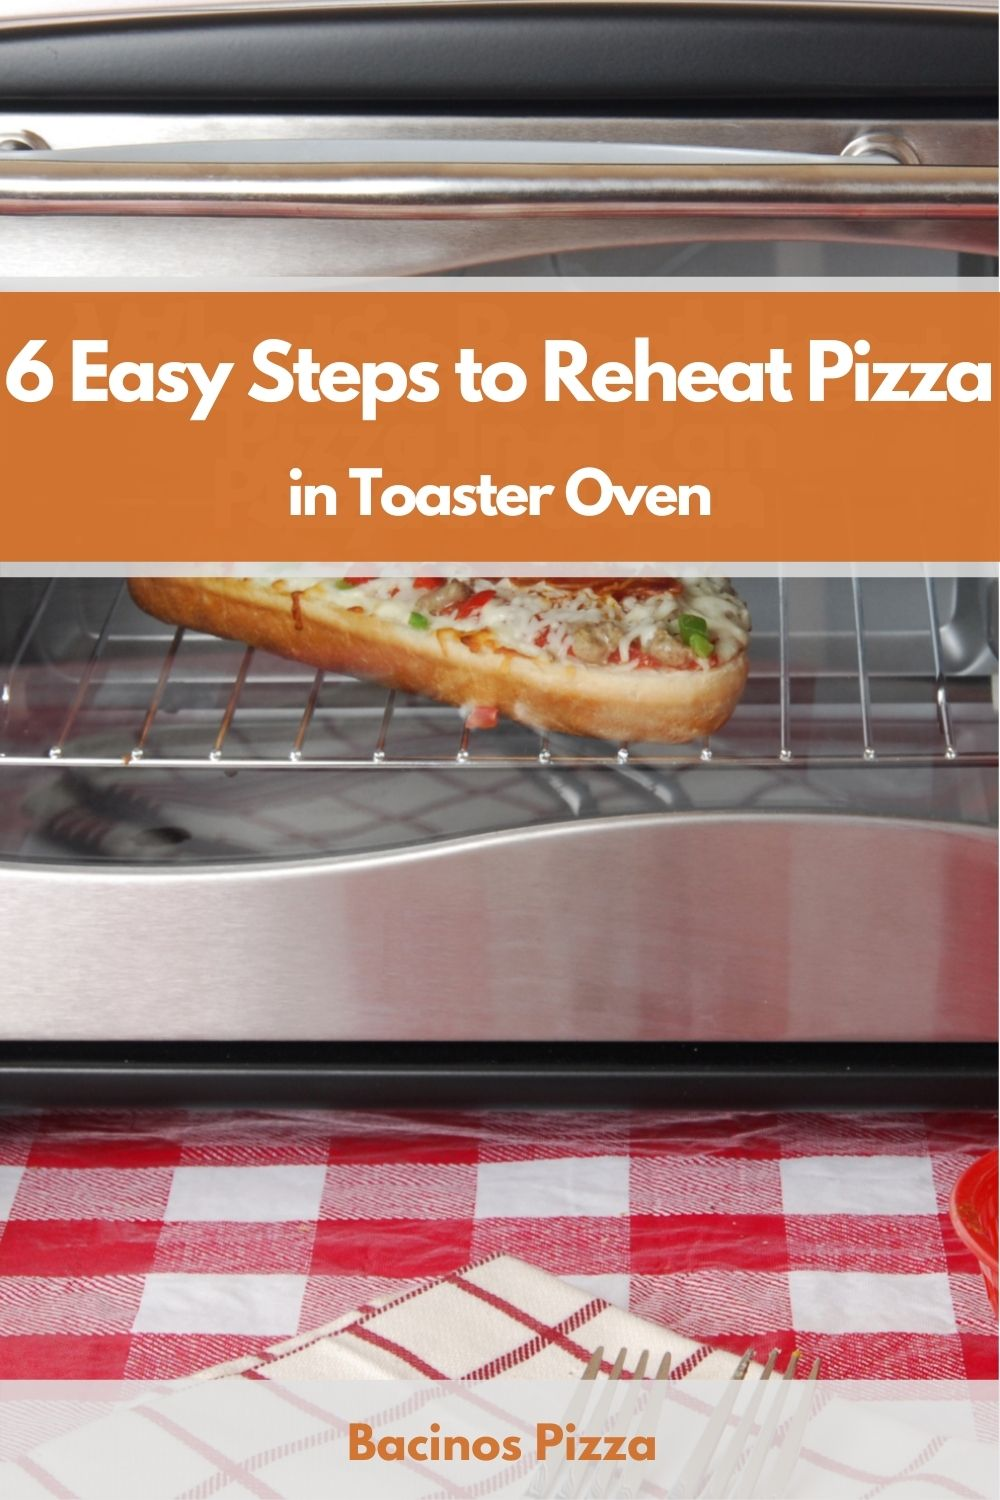 6 Easy Steps to Reheat Pizza in Toaster Oven pin